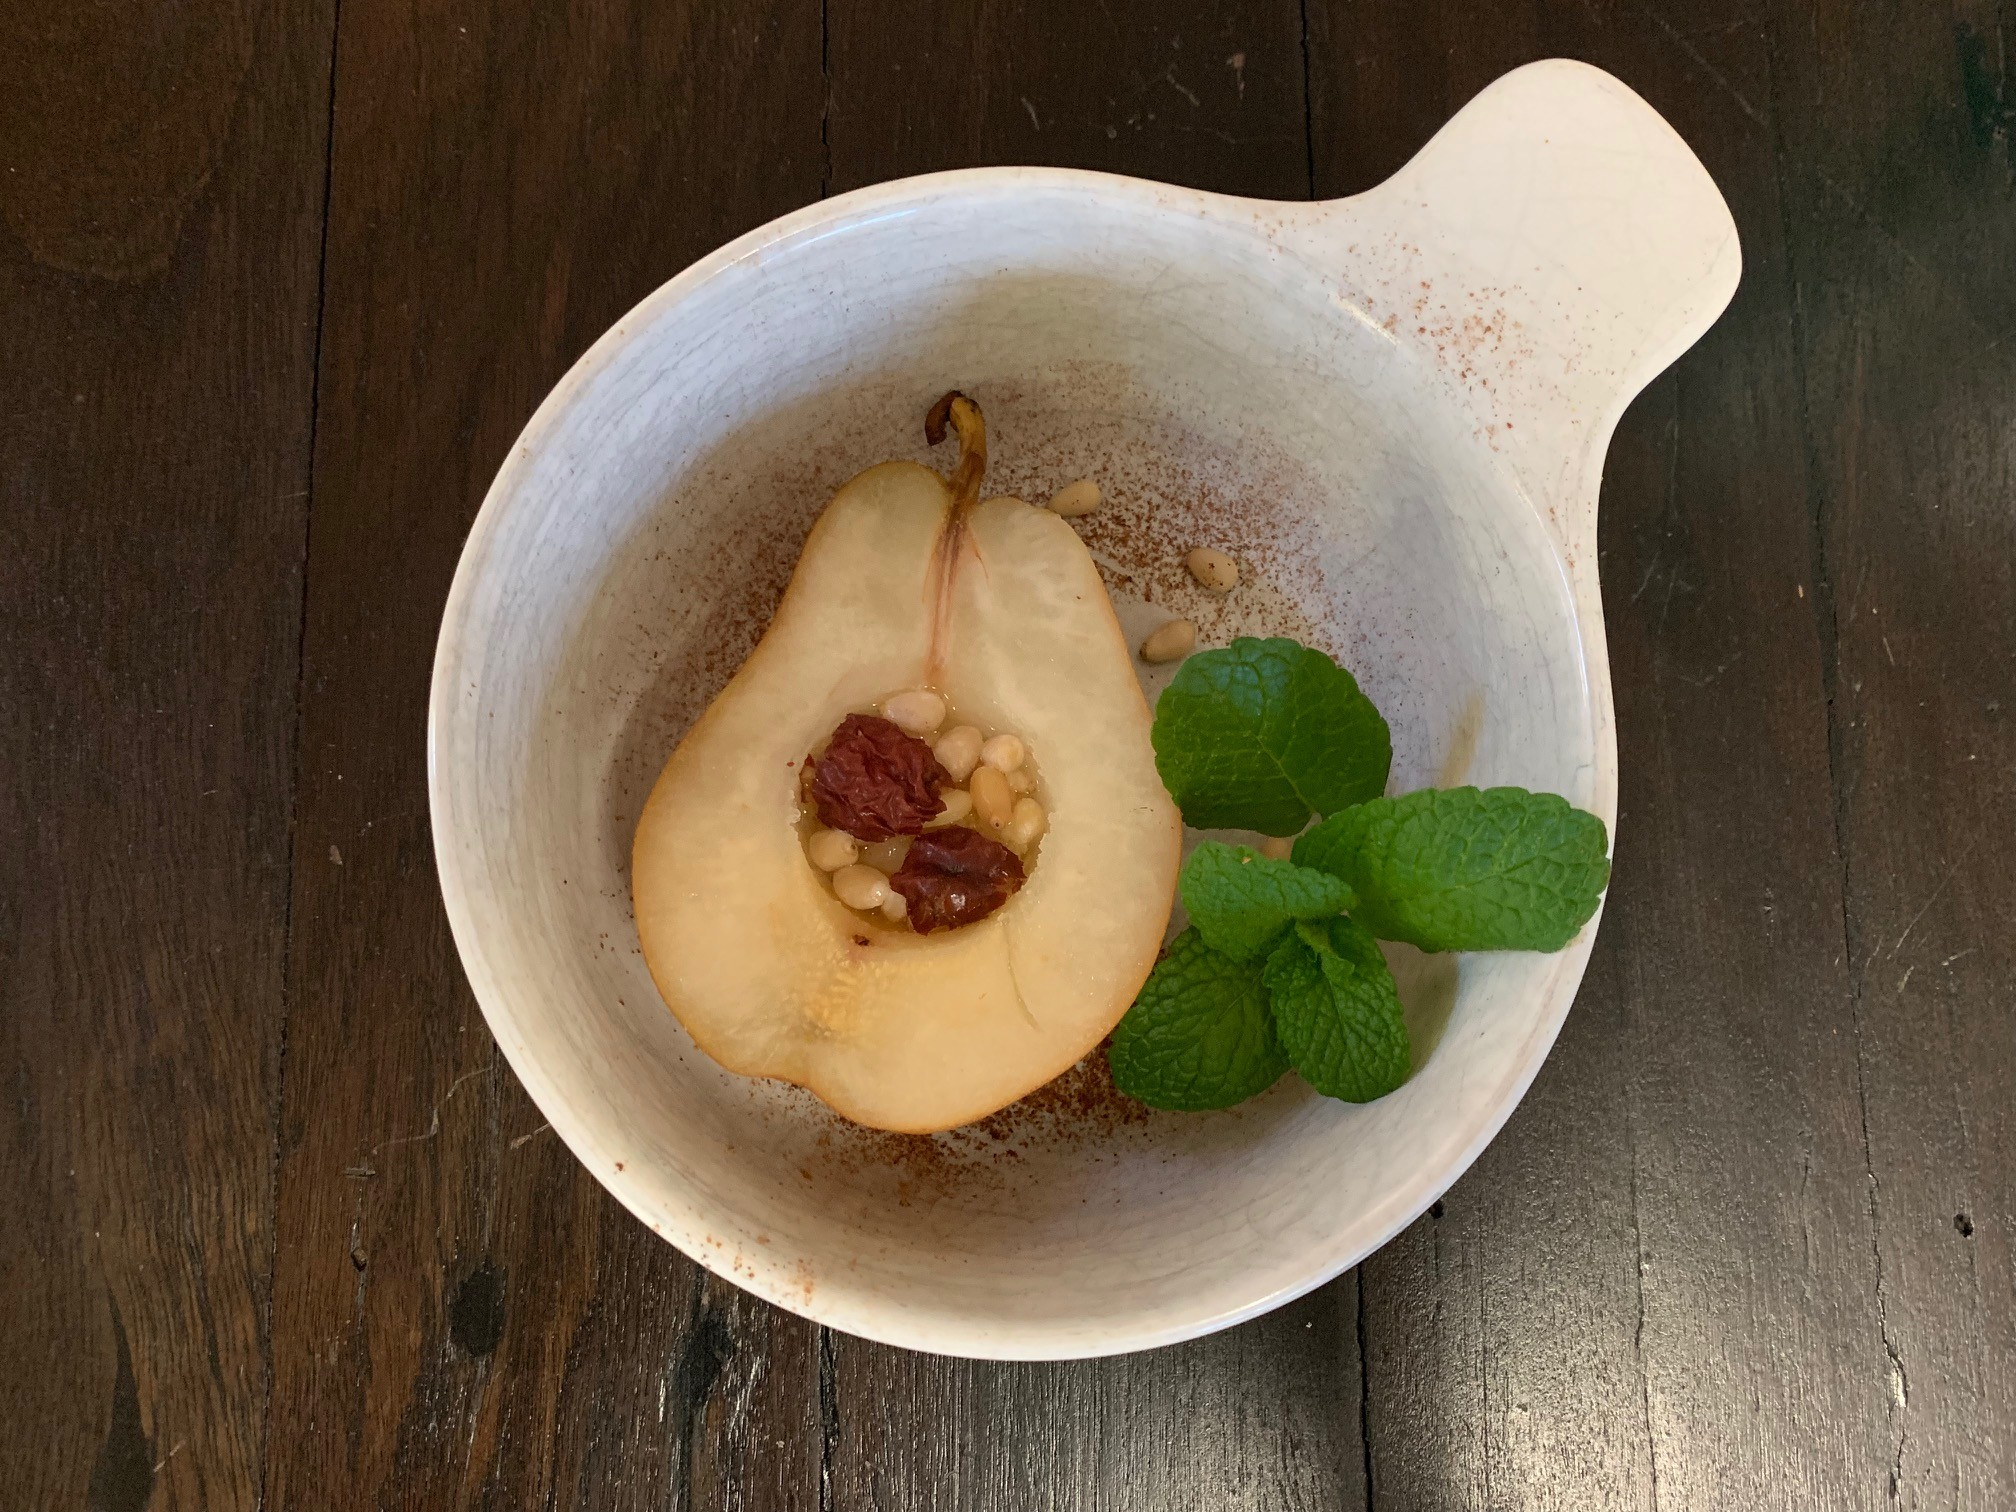 Steamed pear with red date & pine nuts